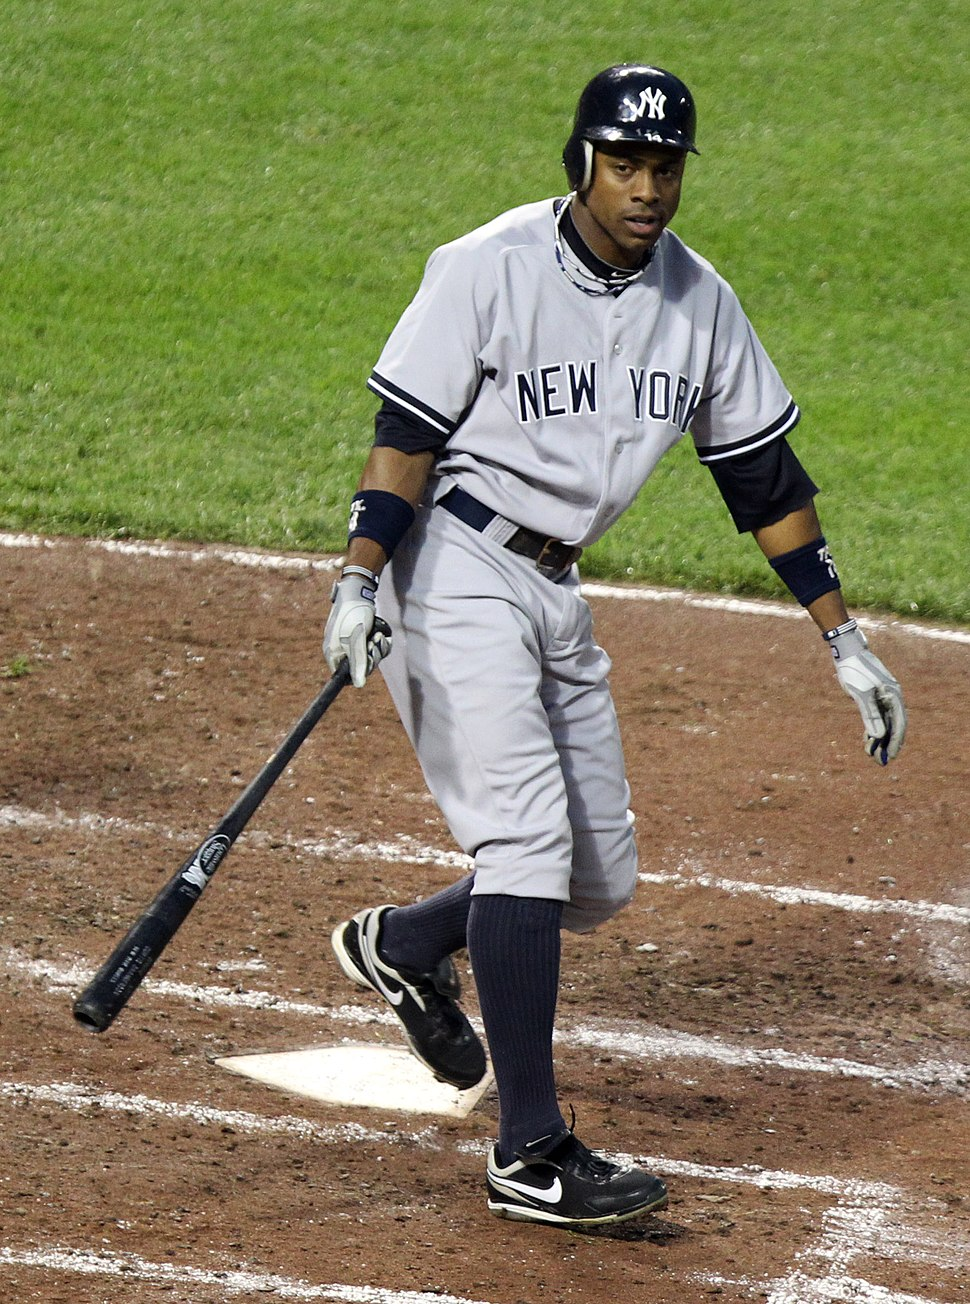 Curtis Granderson at bat 2011